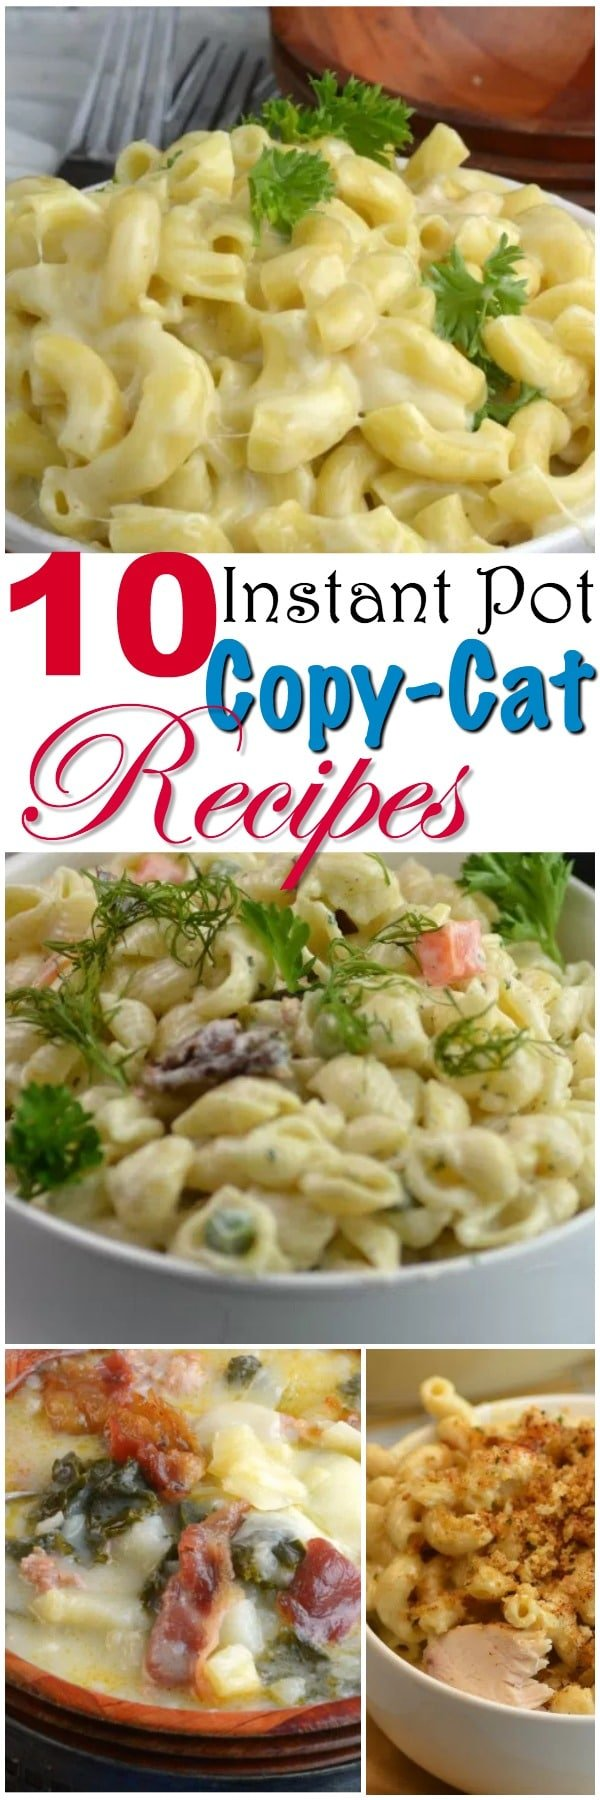 10 Instant Pot Restaurant CopyCat Recipes